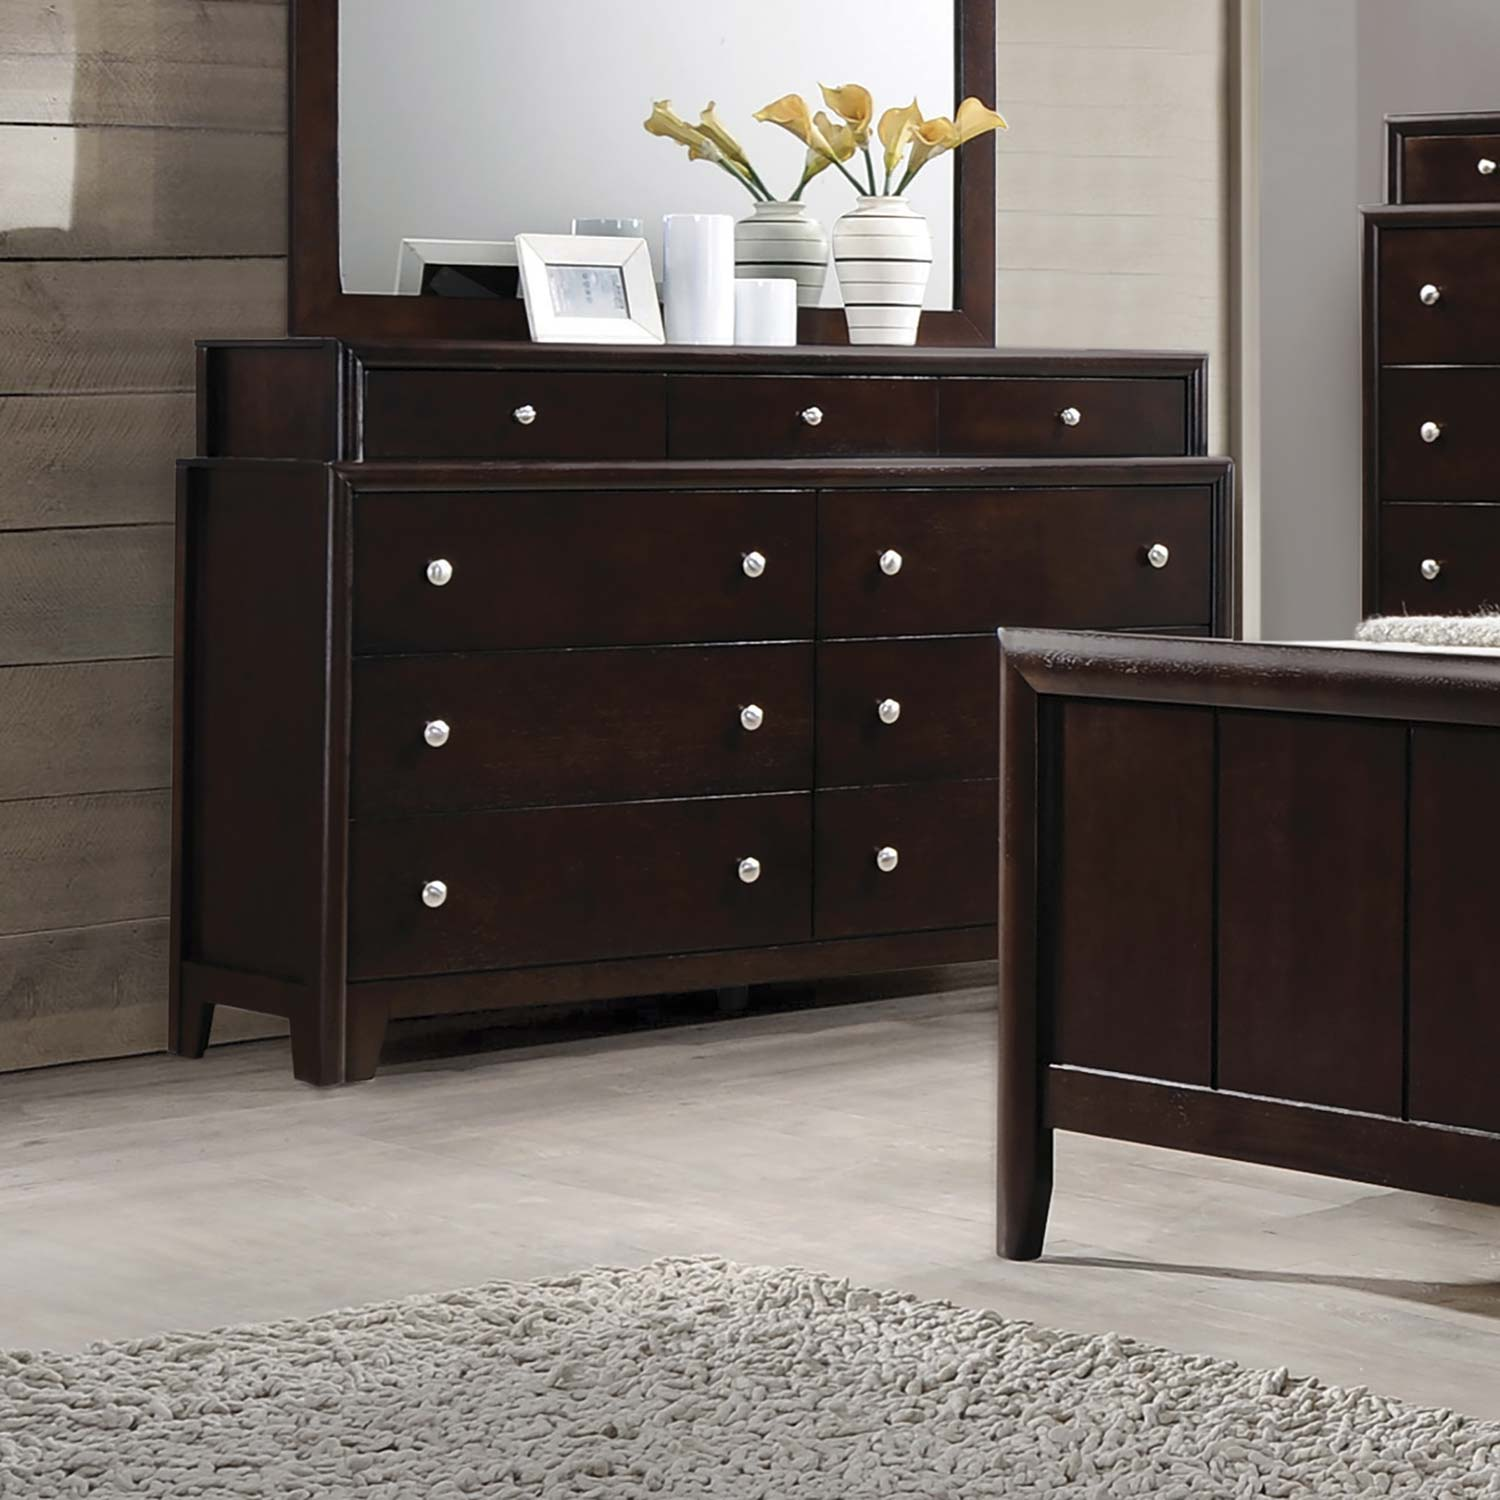 Coaster Madison Dresser - Dark Merlot